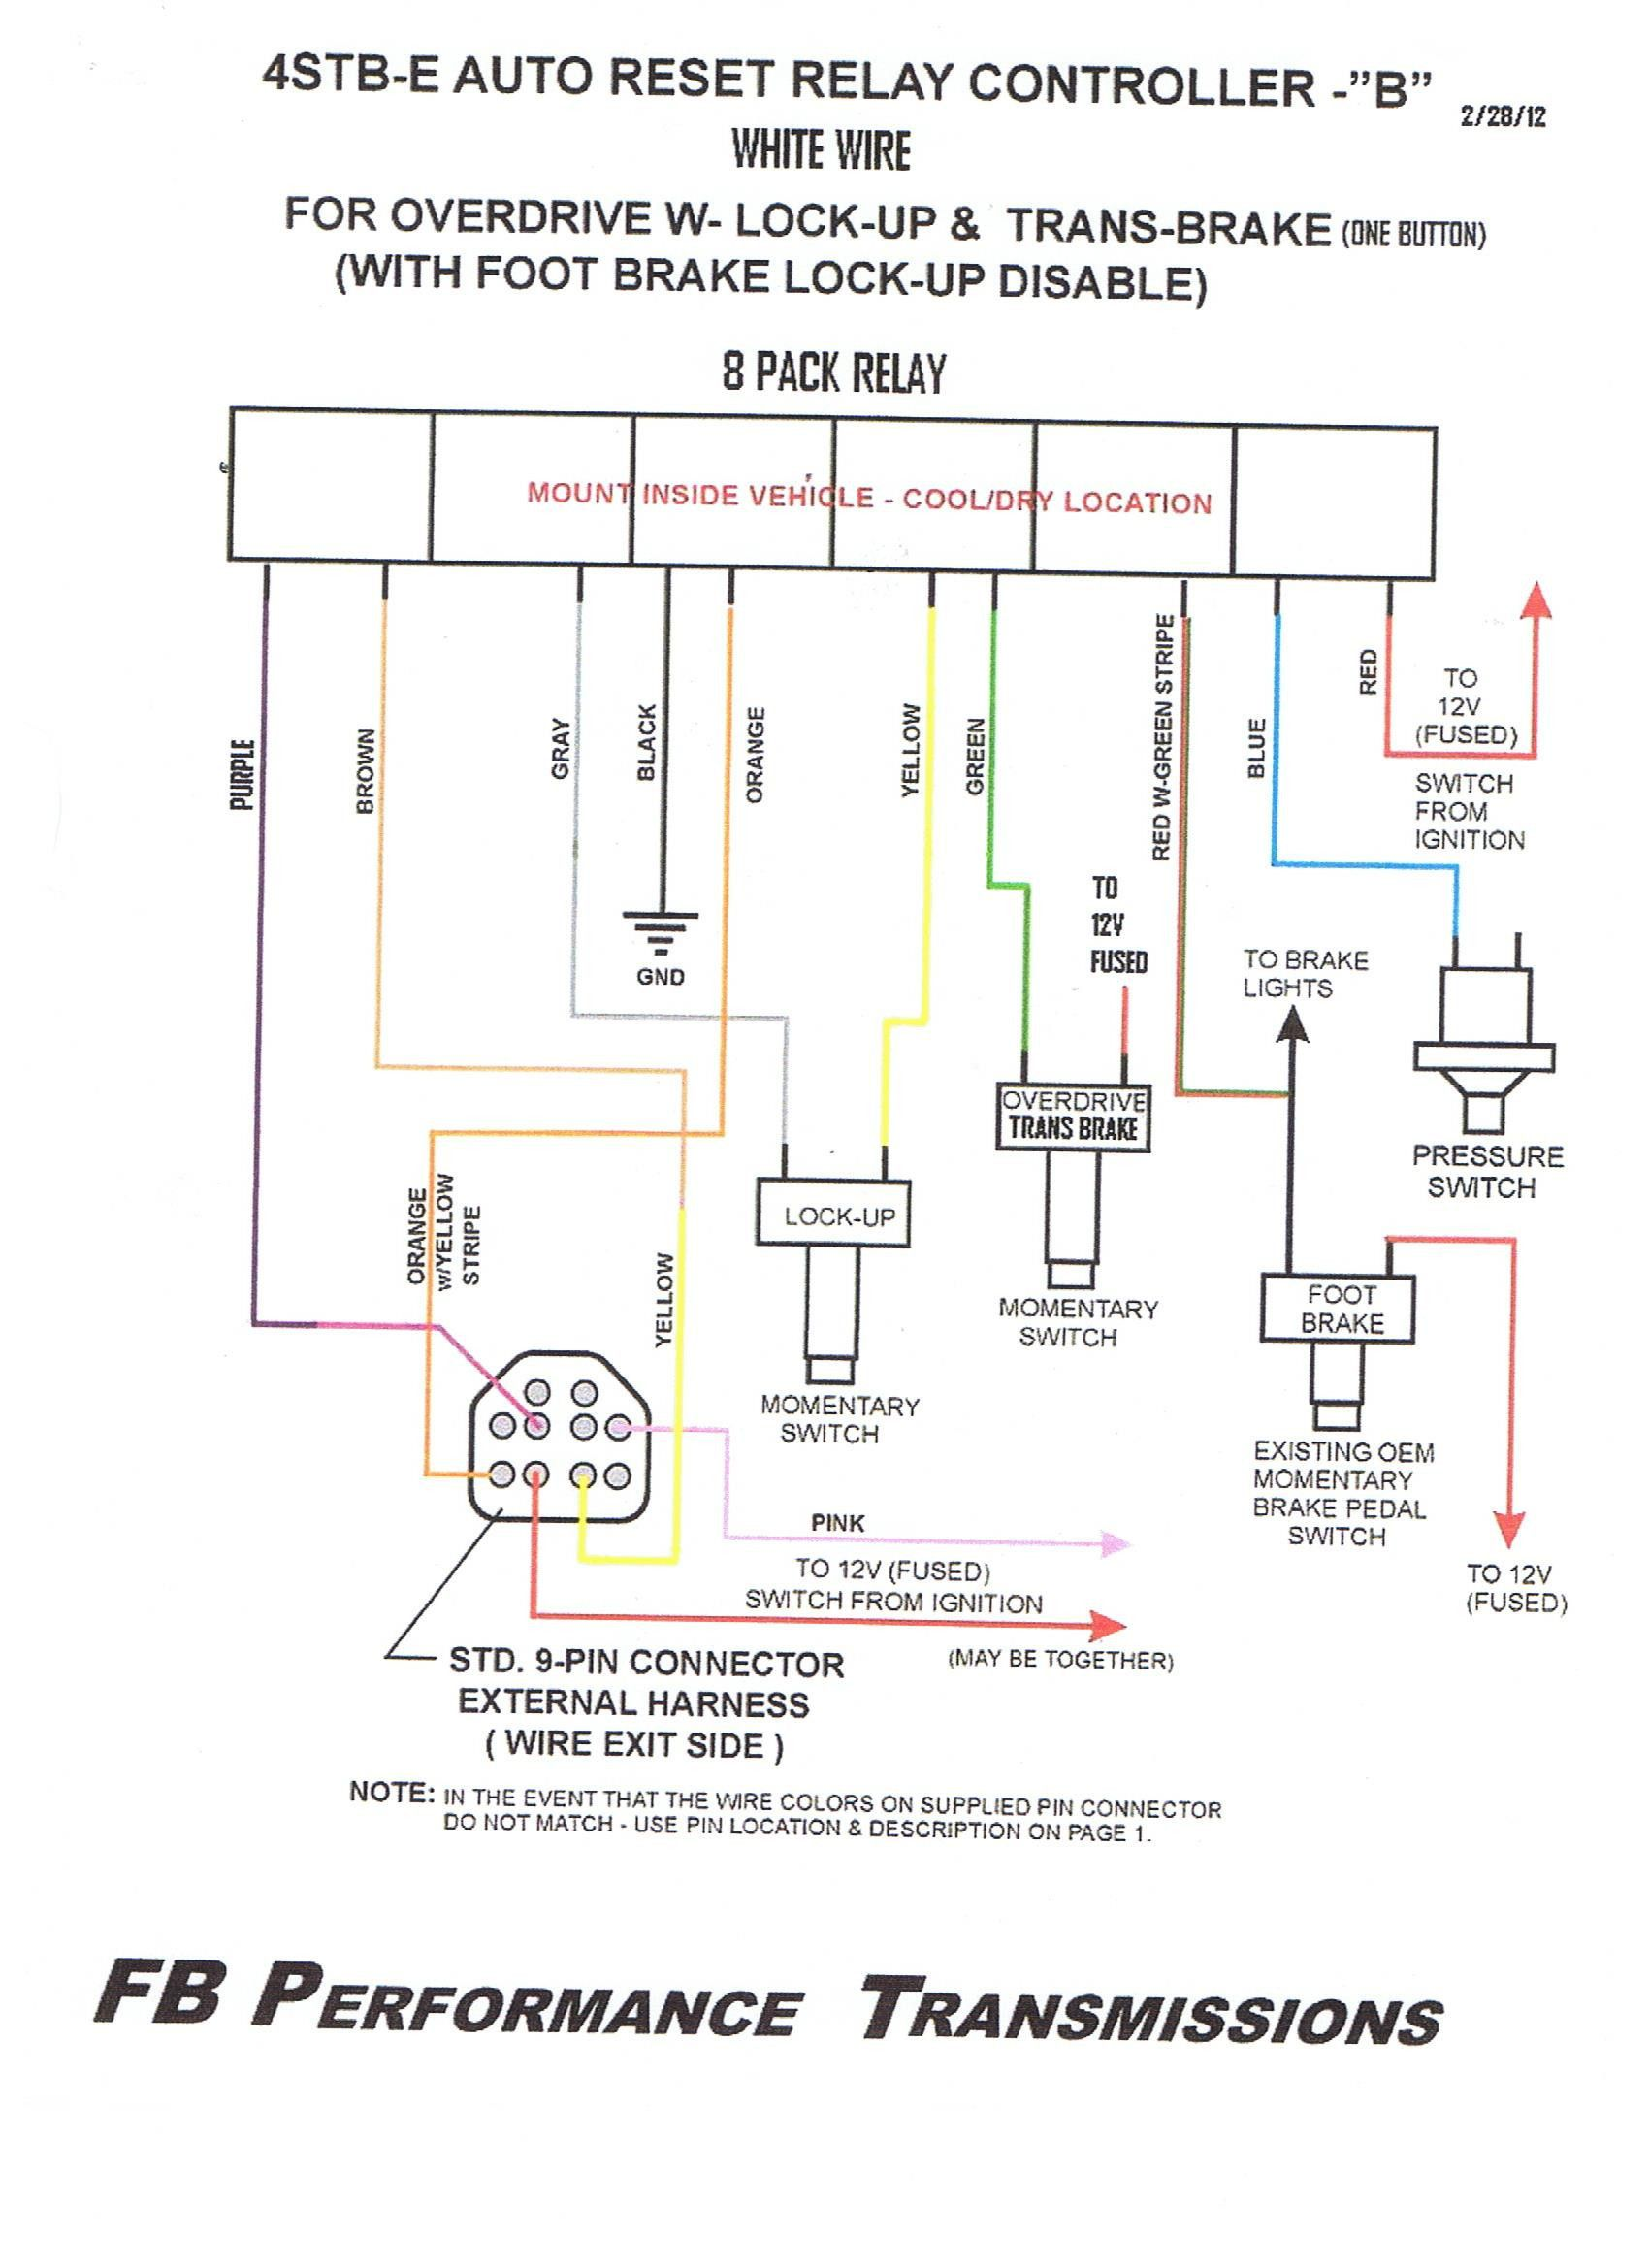 gm fuel sending unit wiring diagram electrical circuit gm relay Fuel Gauge Sending Unit Wiring Diagram gm fuel sending unit wiring diagram electrical circuit gm relay wiring trusted wiring diagrams